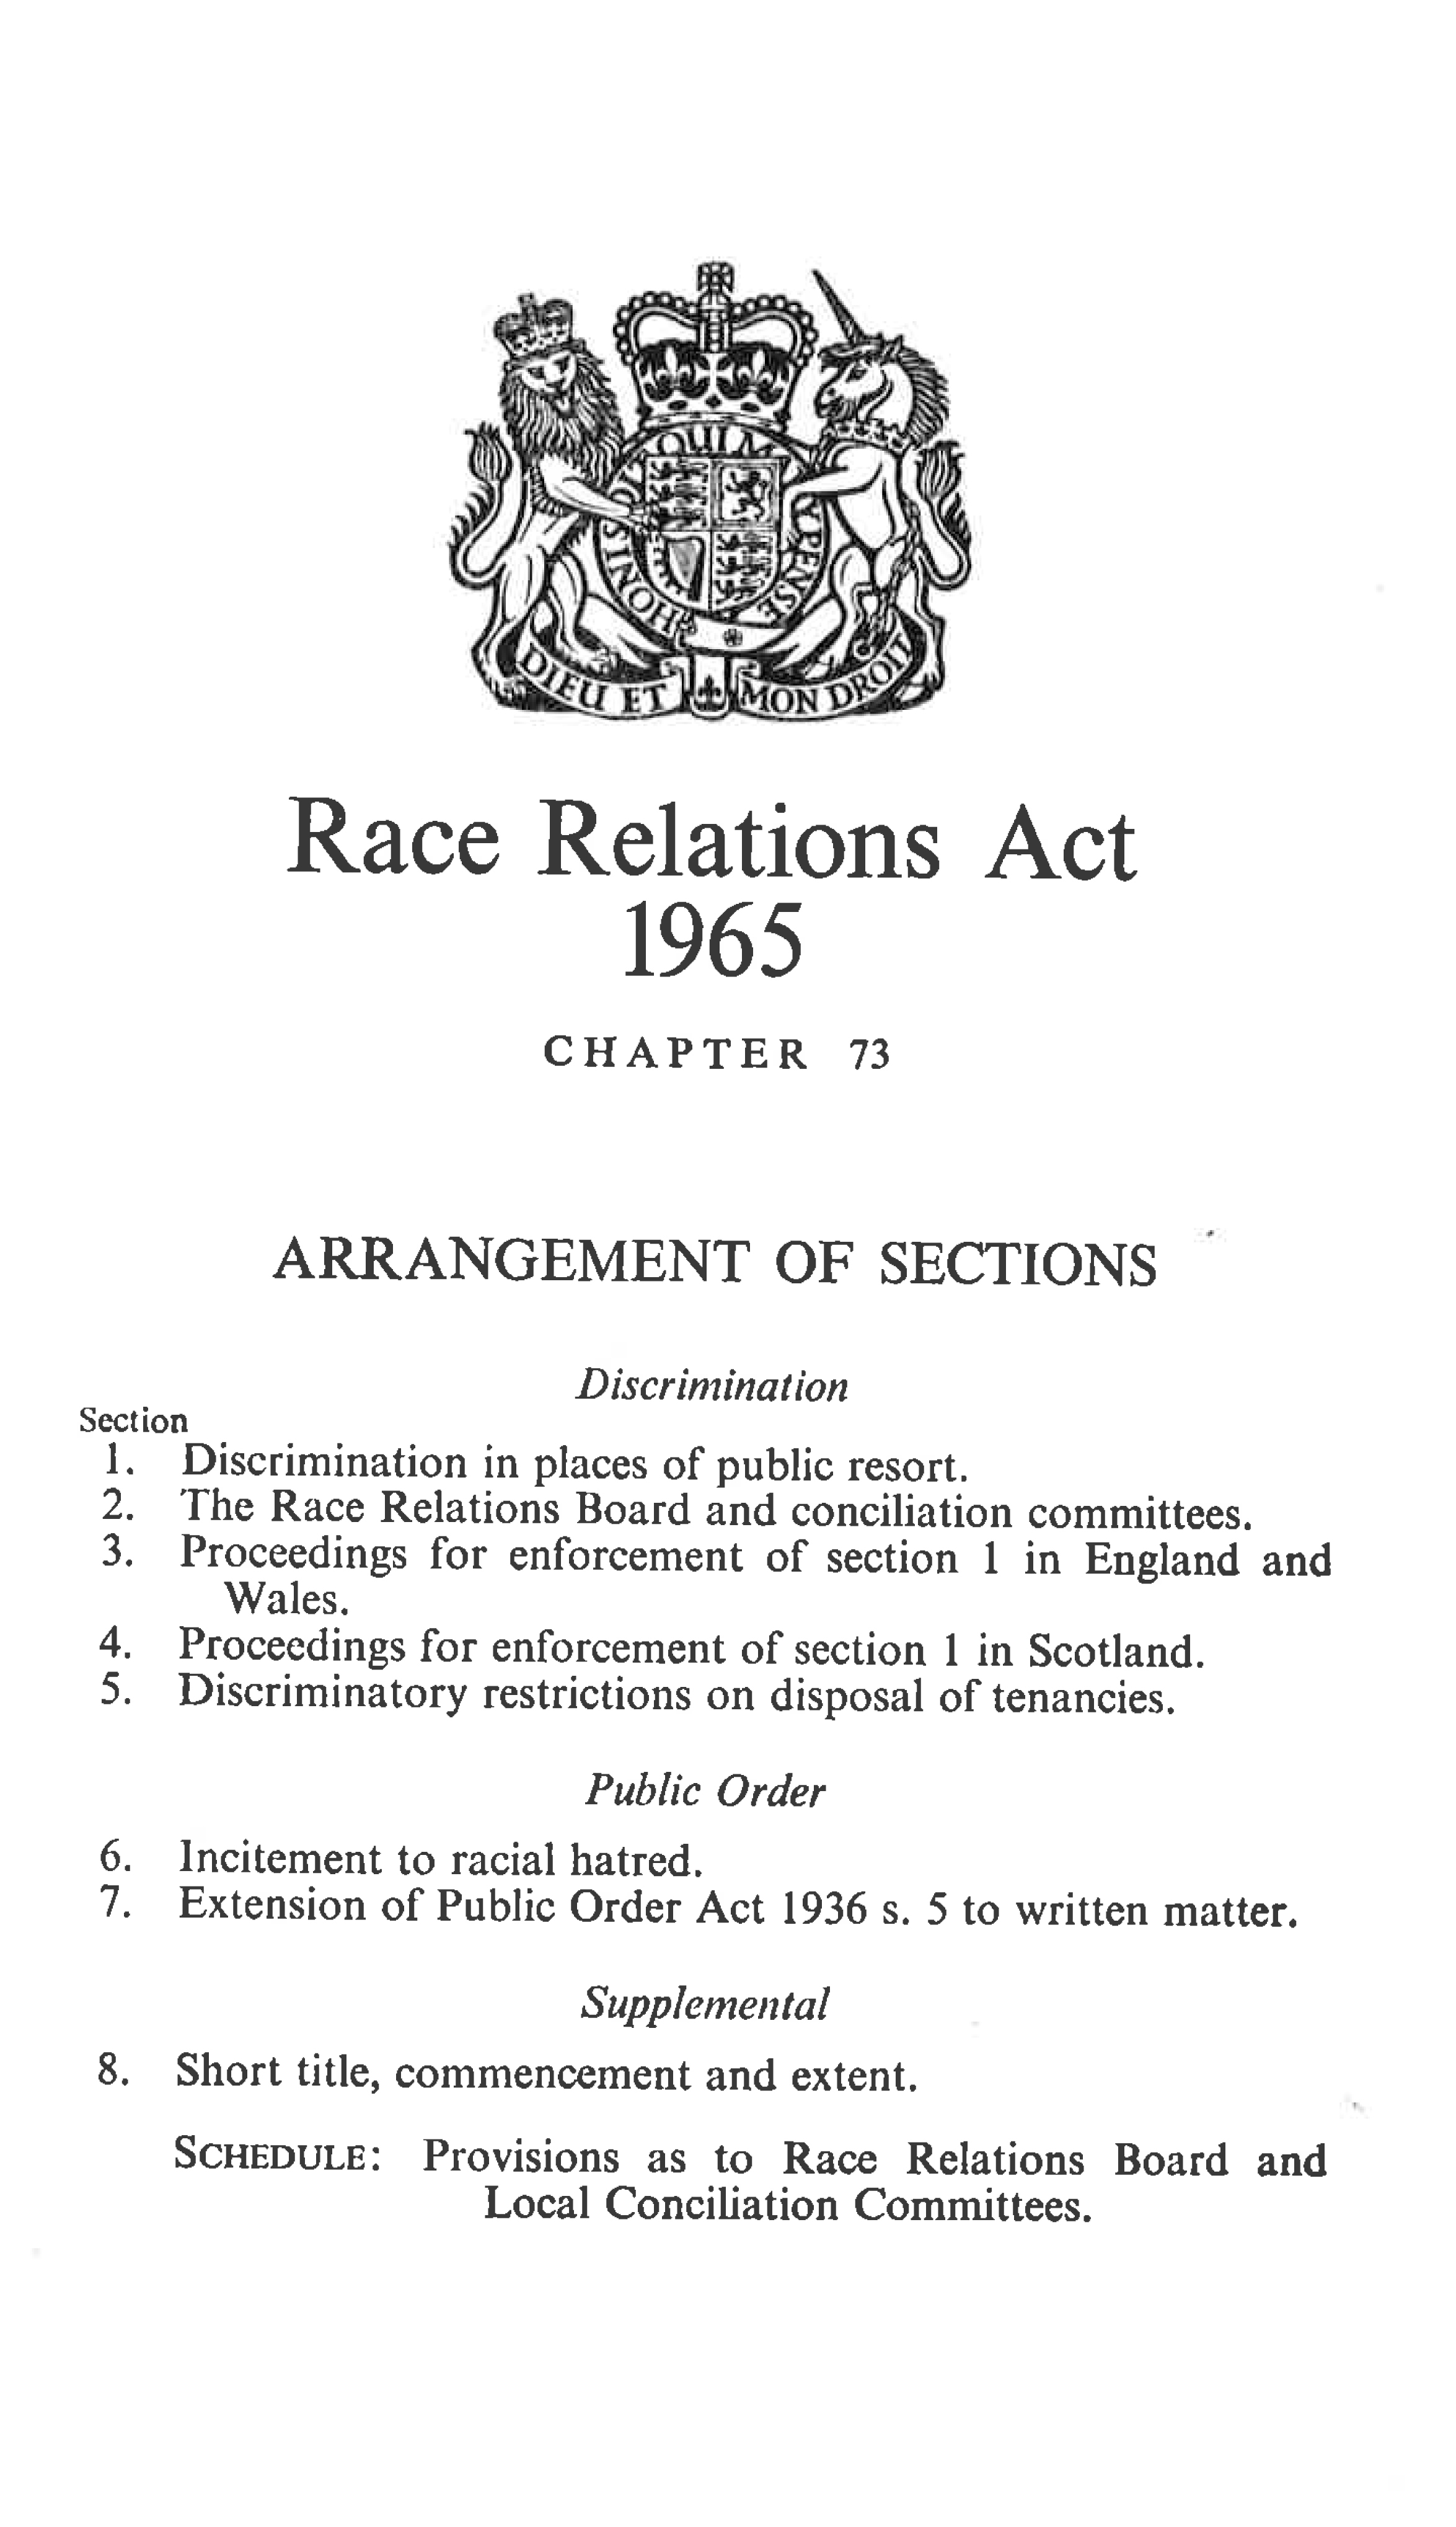 Race Relations Act 1968